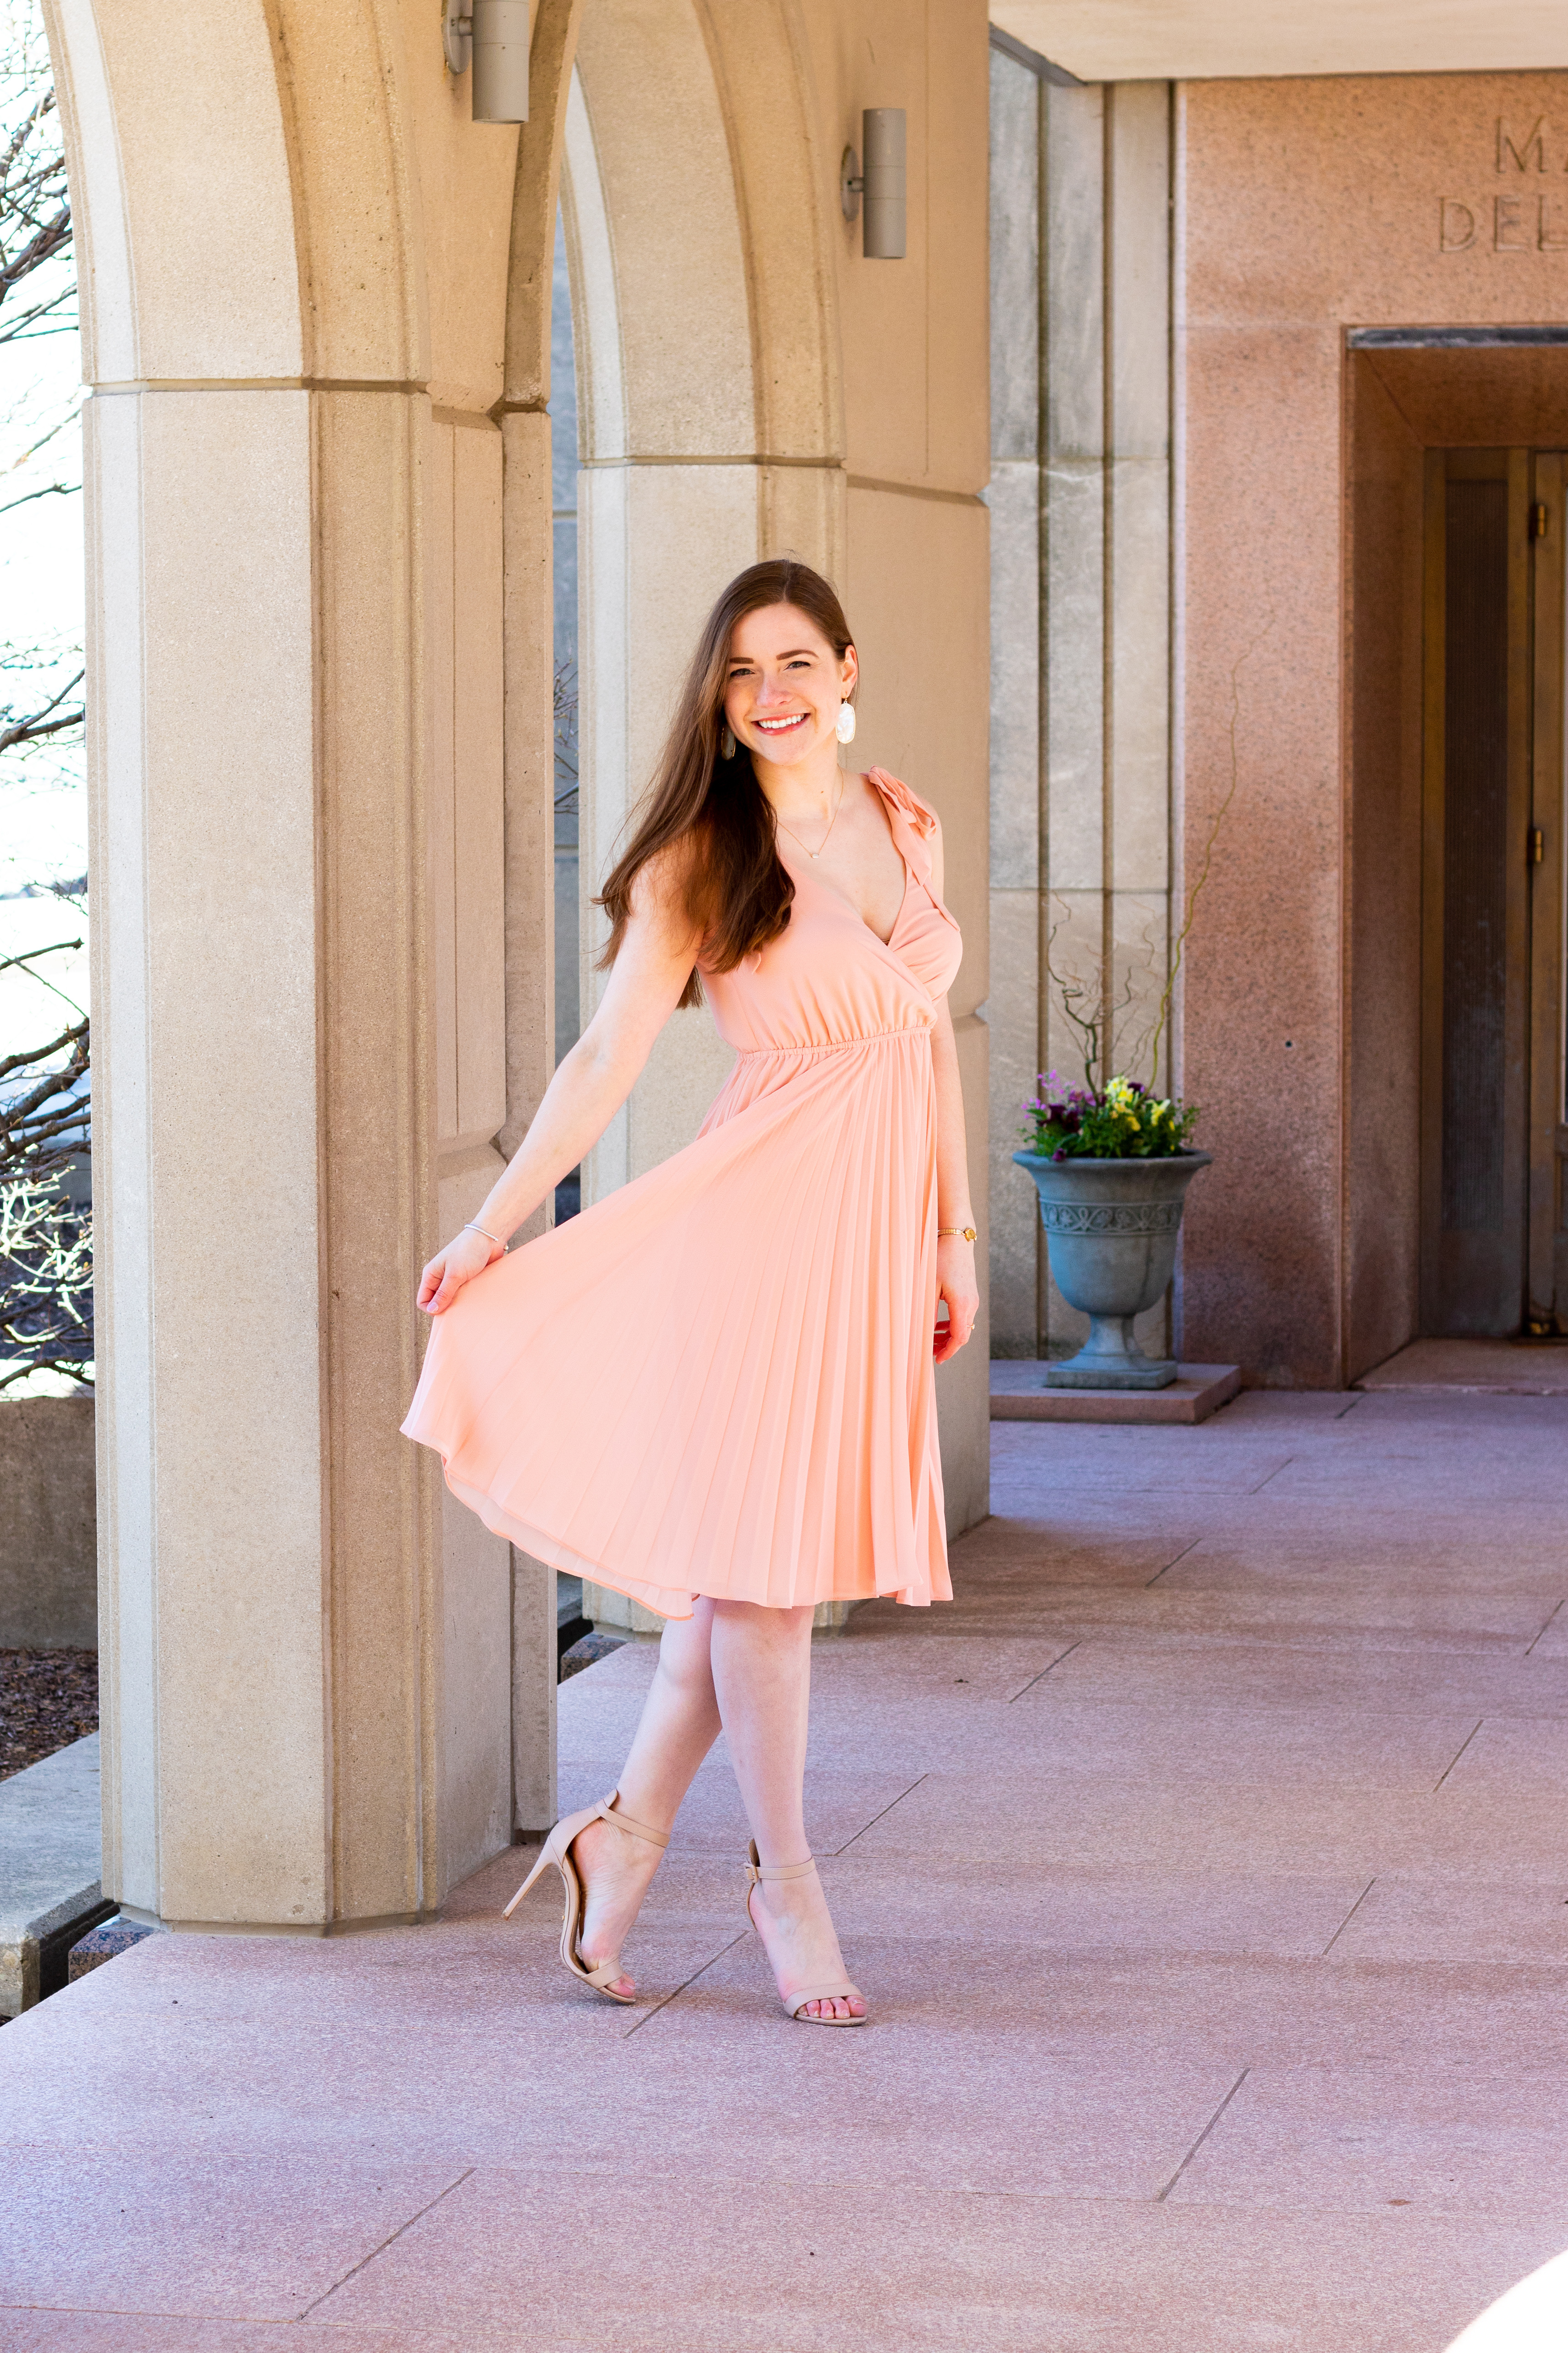 c24e2163b00 Wedding Guest Outfit Inspiration. May 4